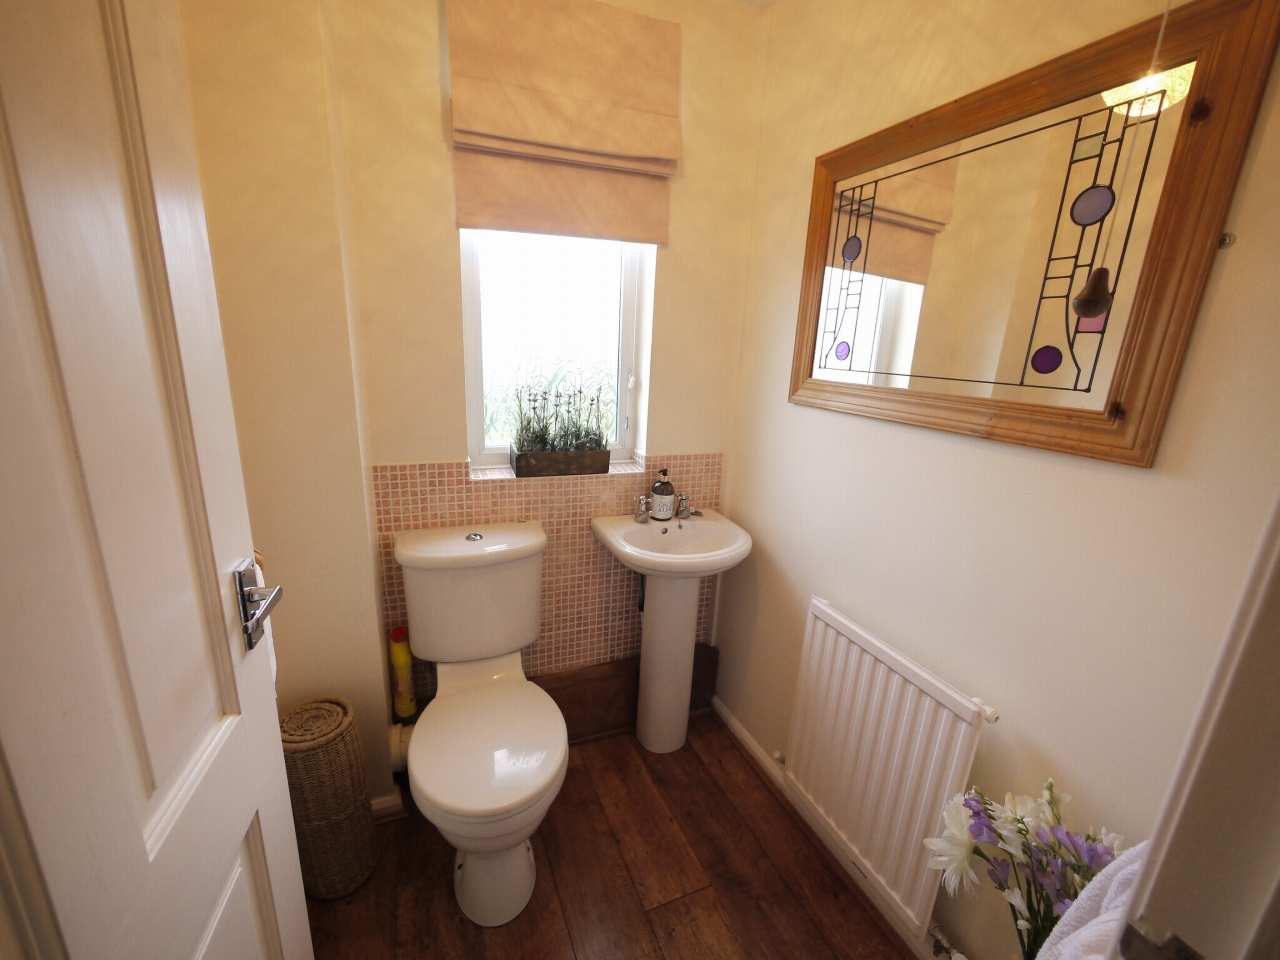 4 bedroom detached house For Sale in Brighouse - Photograph 6.